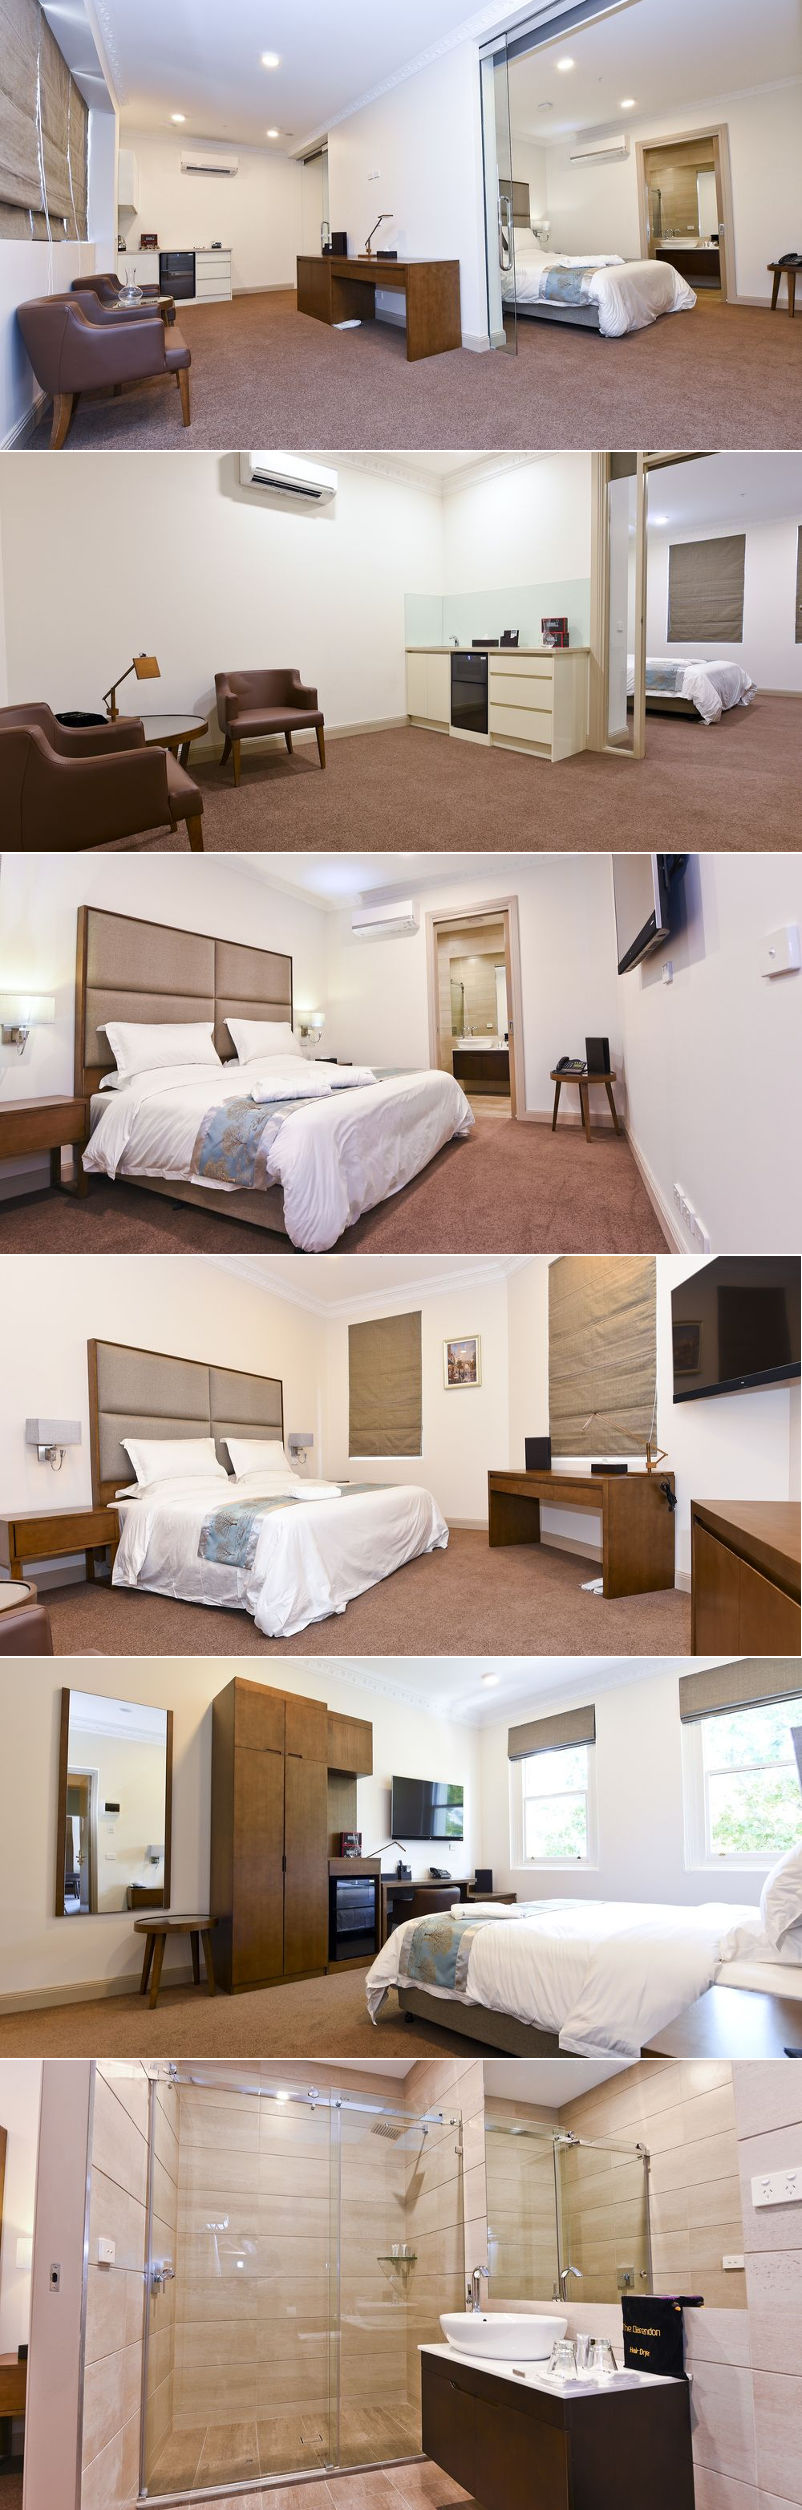 Clarendon Hotel - Hotel rooms